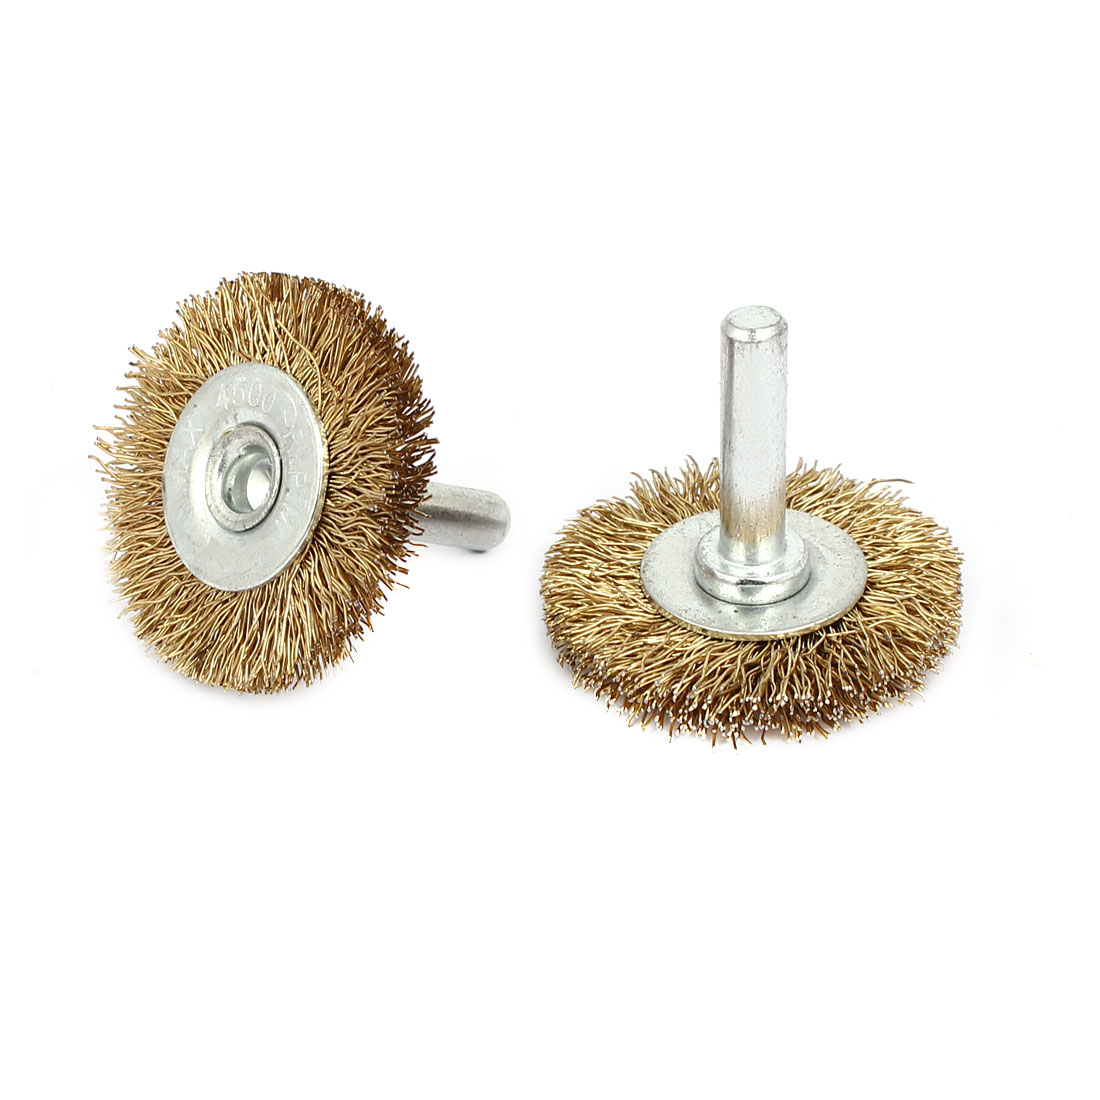 2pcs 6mm Shank 40mm Dia T Shaped Steel Wire Polishing Brush for Rotary Tool